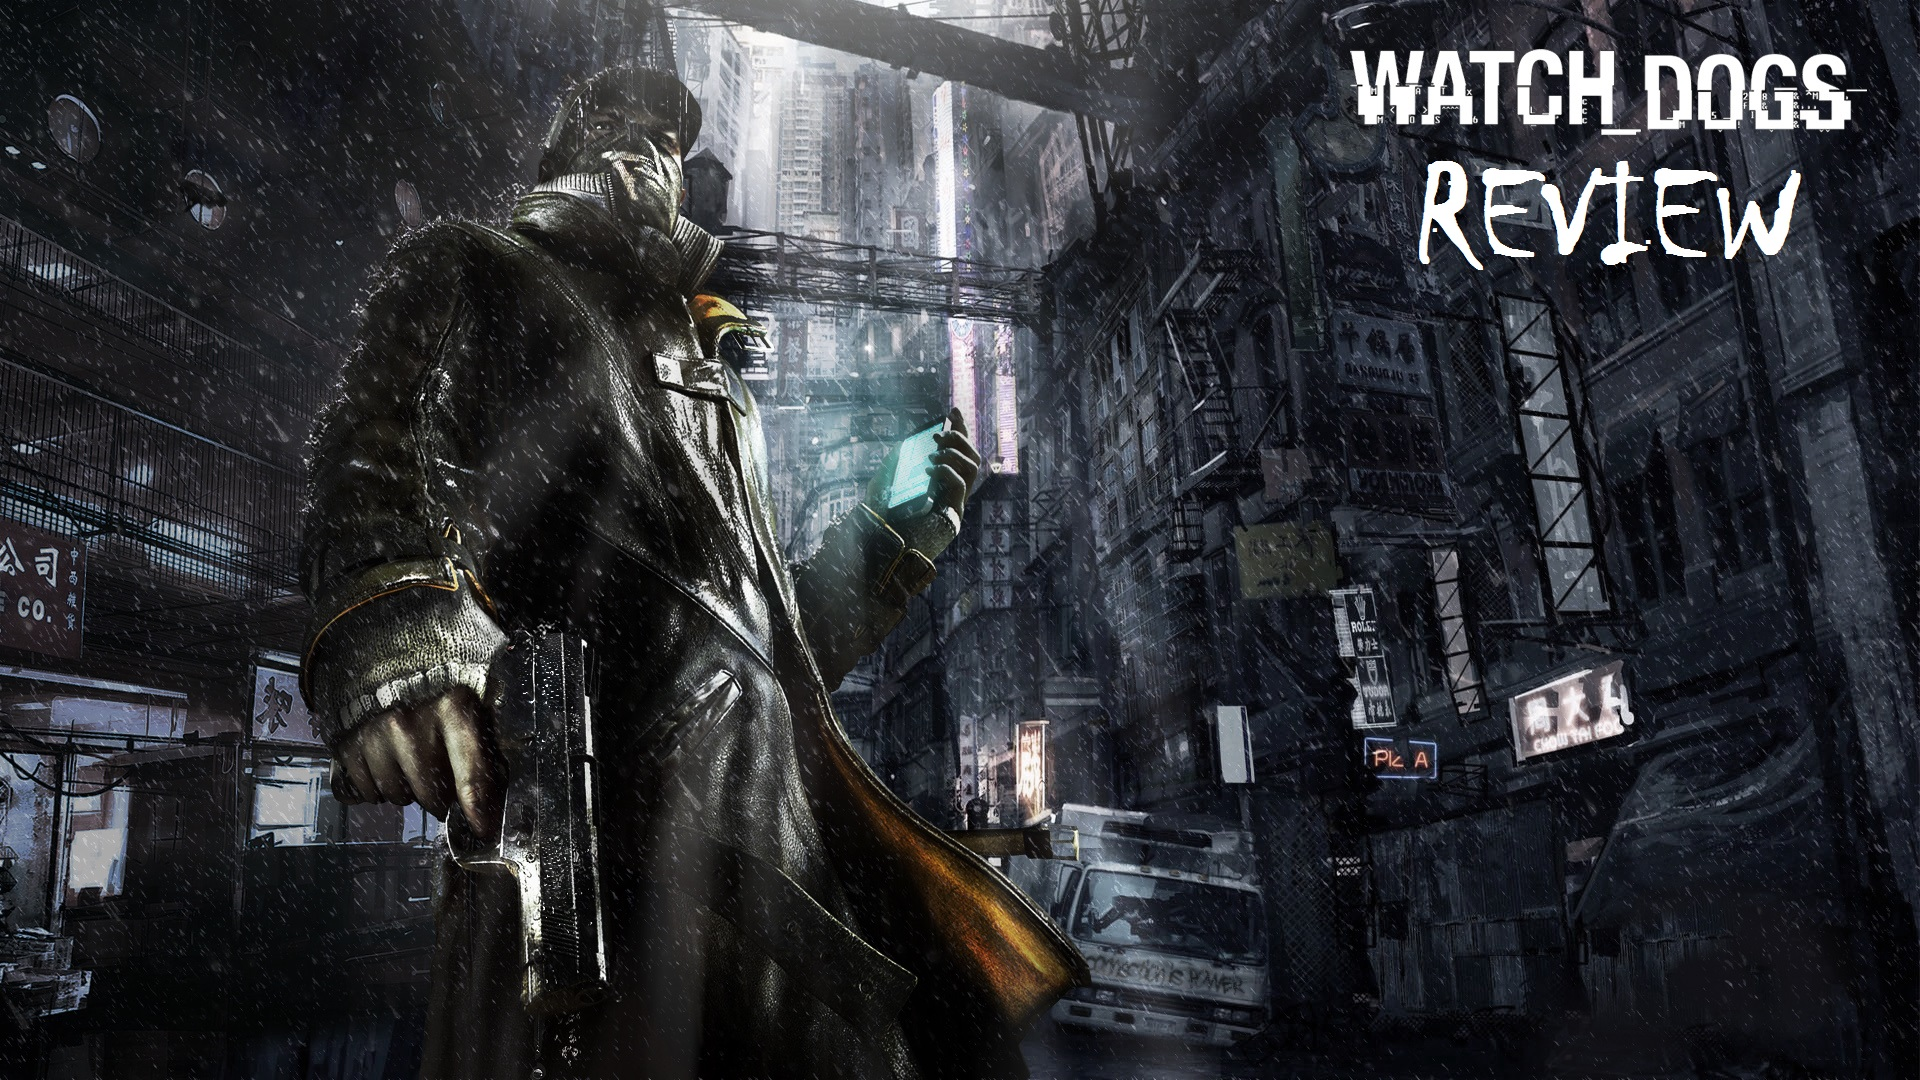 WatchDogsReview_AndroDollar_1